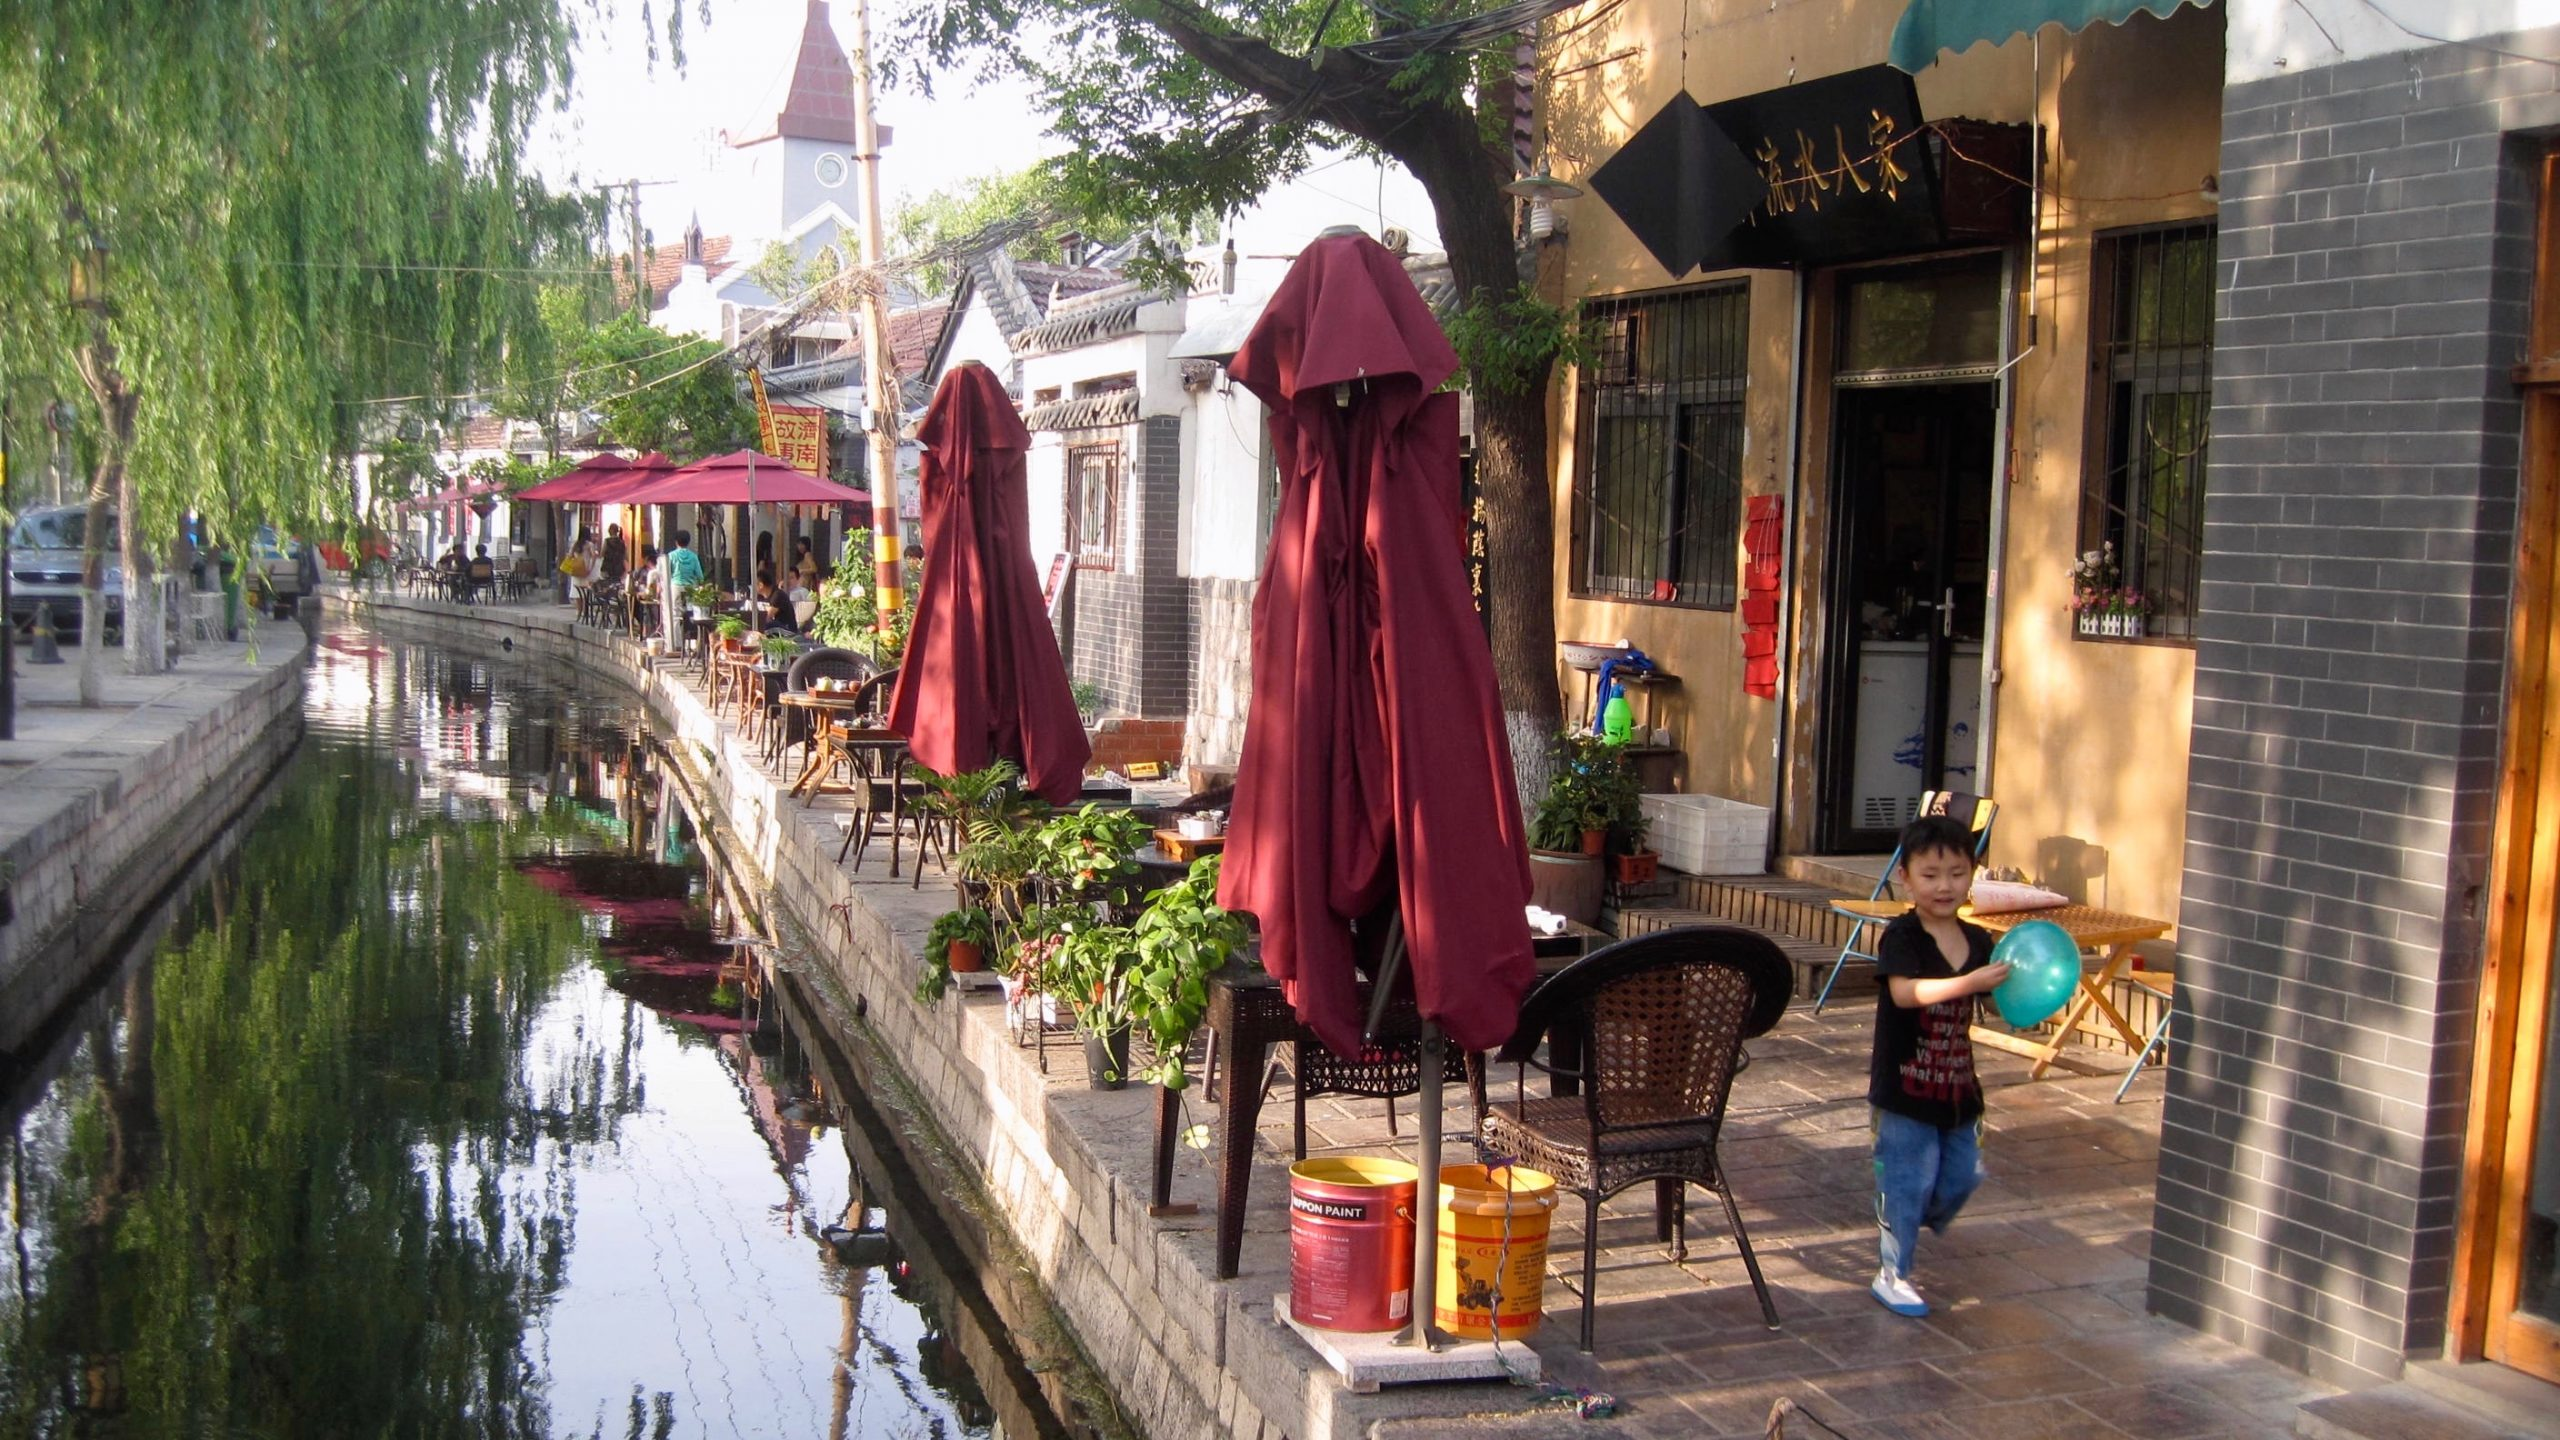 A kid playing by a canal in Jinan, the city where I work as an expat teaching English in China. ©KettiWilhelm2015